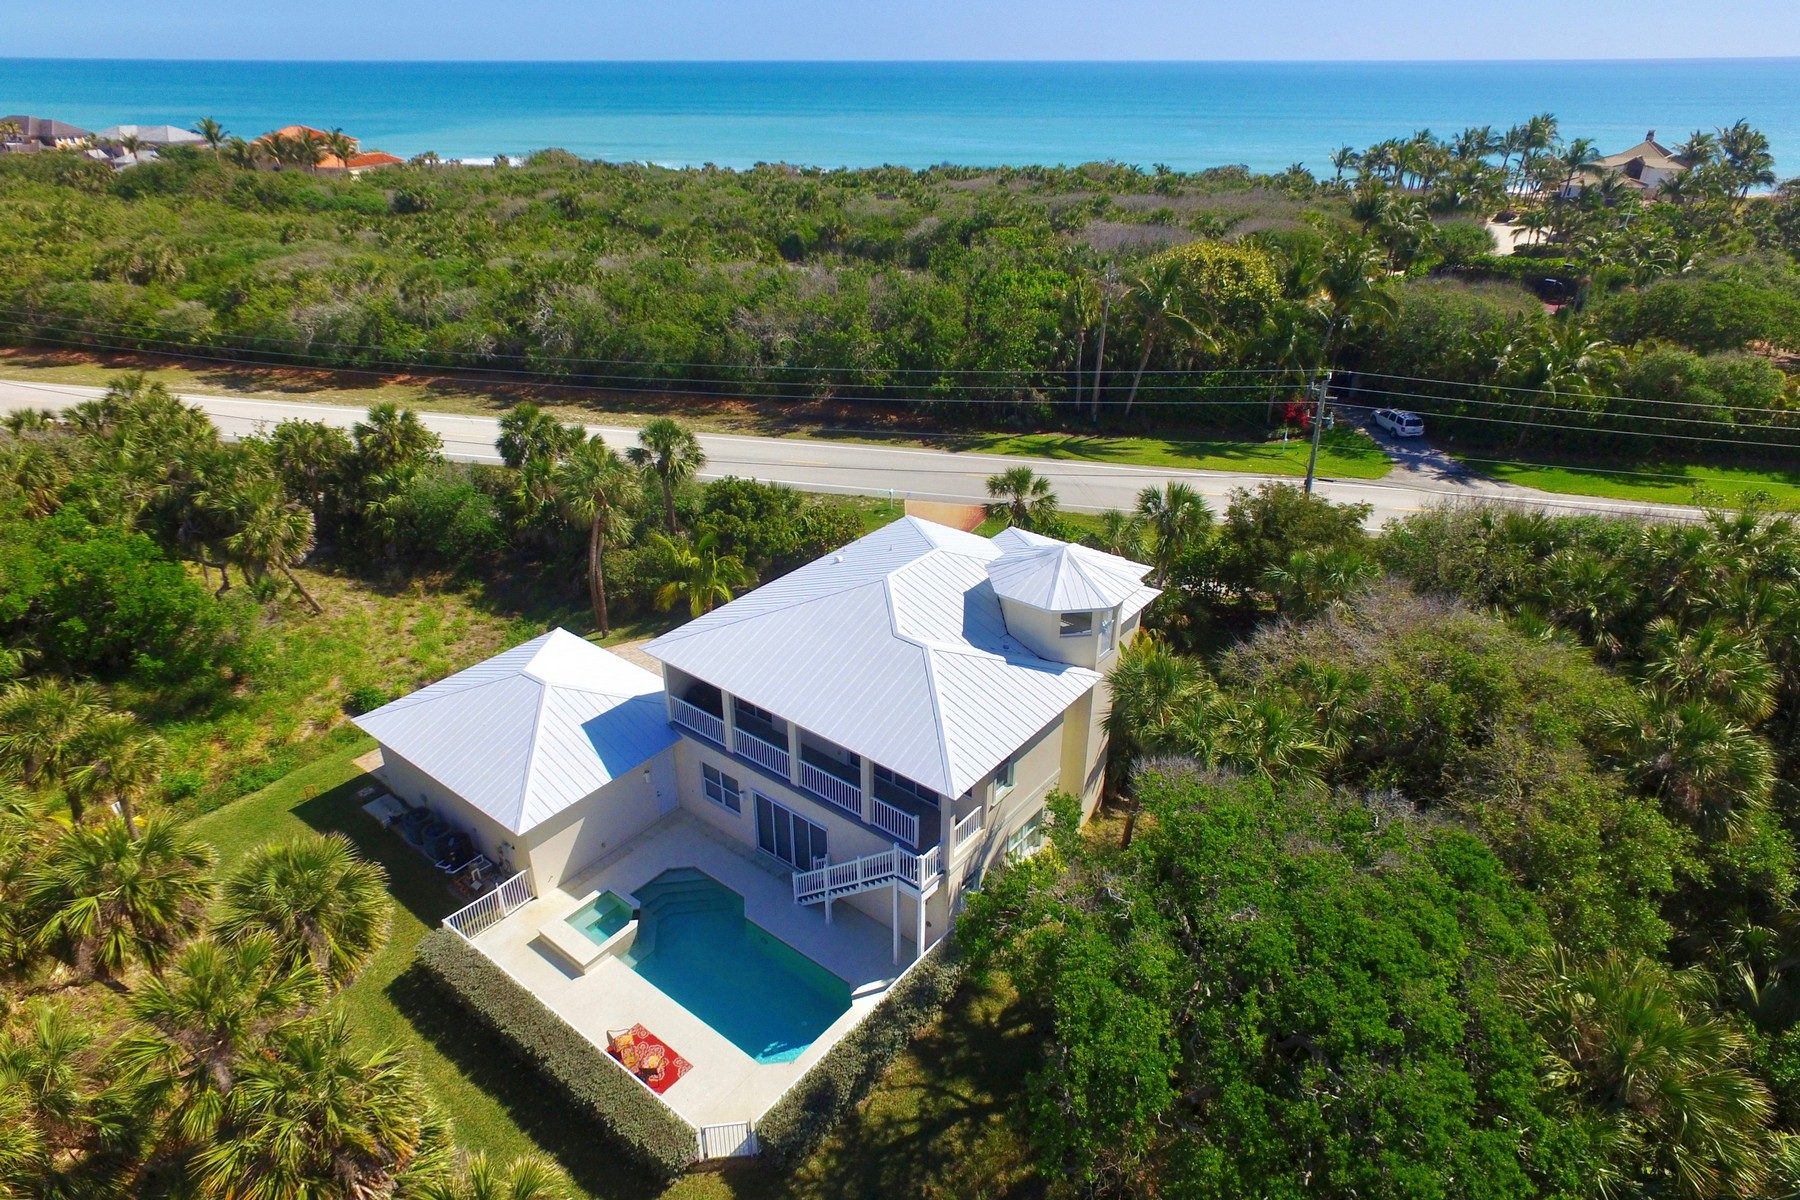 Moradia para Venda às Exceptional Home Steps to Ocean 11699 Highway A1A Vero Beach, Florida, 32963 Estados Unidos